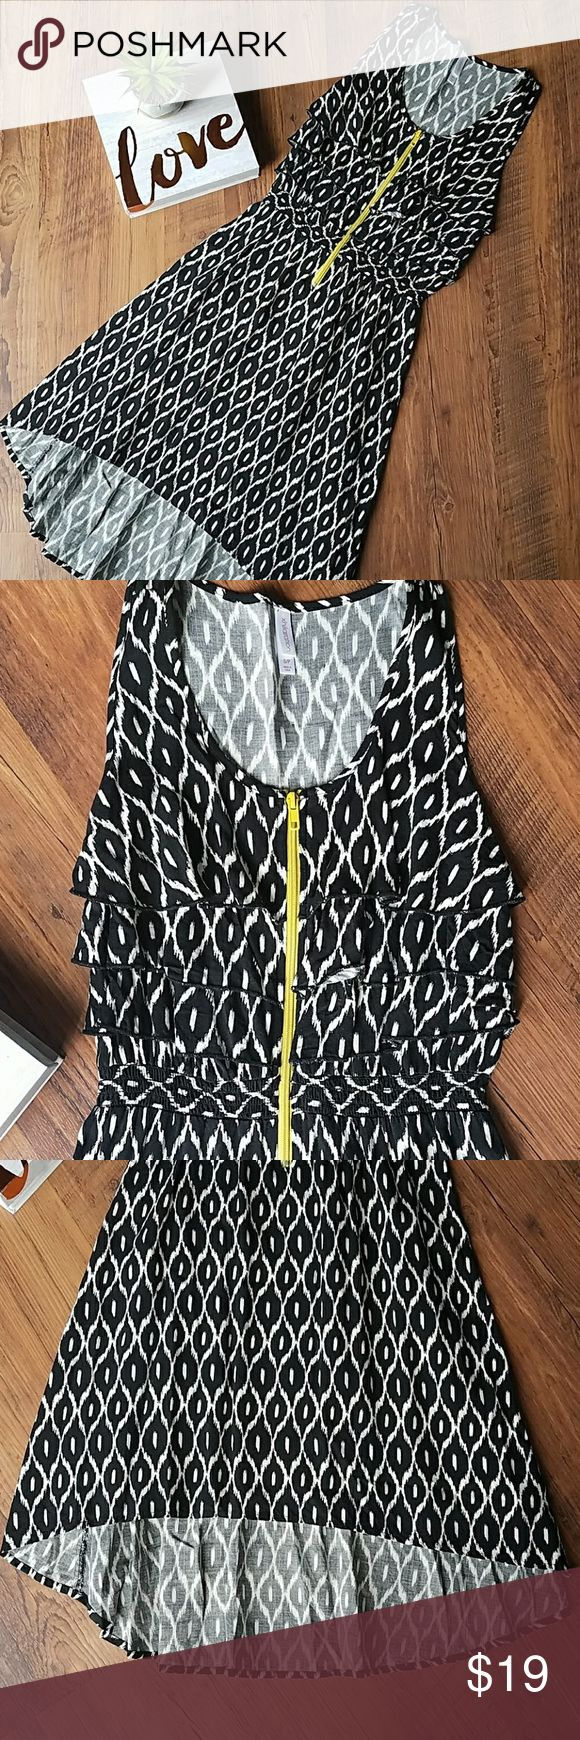 "💕 Xhiliration High Low Zip Front Dress 💕 GUC without any flaws. From armpit to armpit laid flat is approximately 15.5."" Length is approximately 34.5"" in front and 40"" in back. Always open to reasonable offers! Xhilaration Dresses High Low"